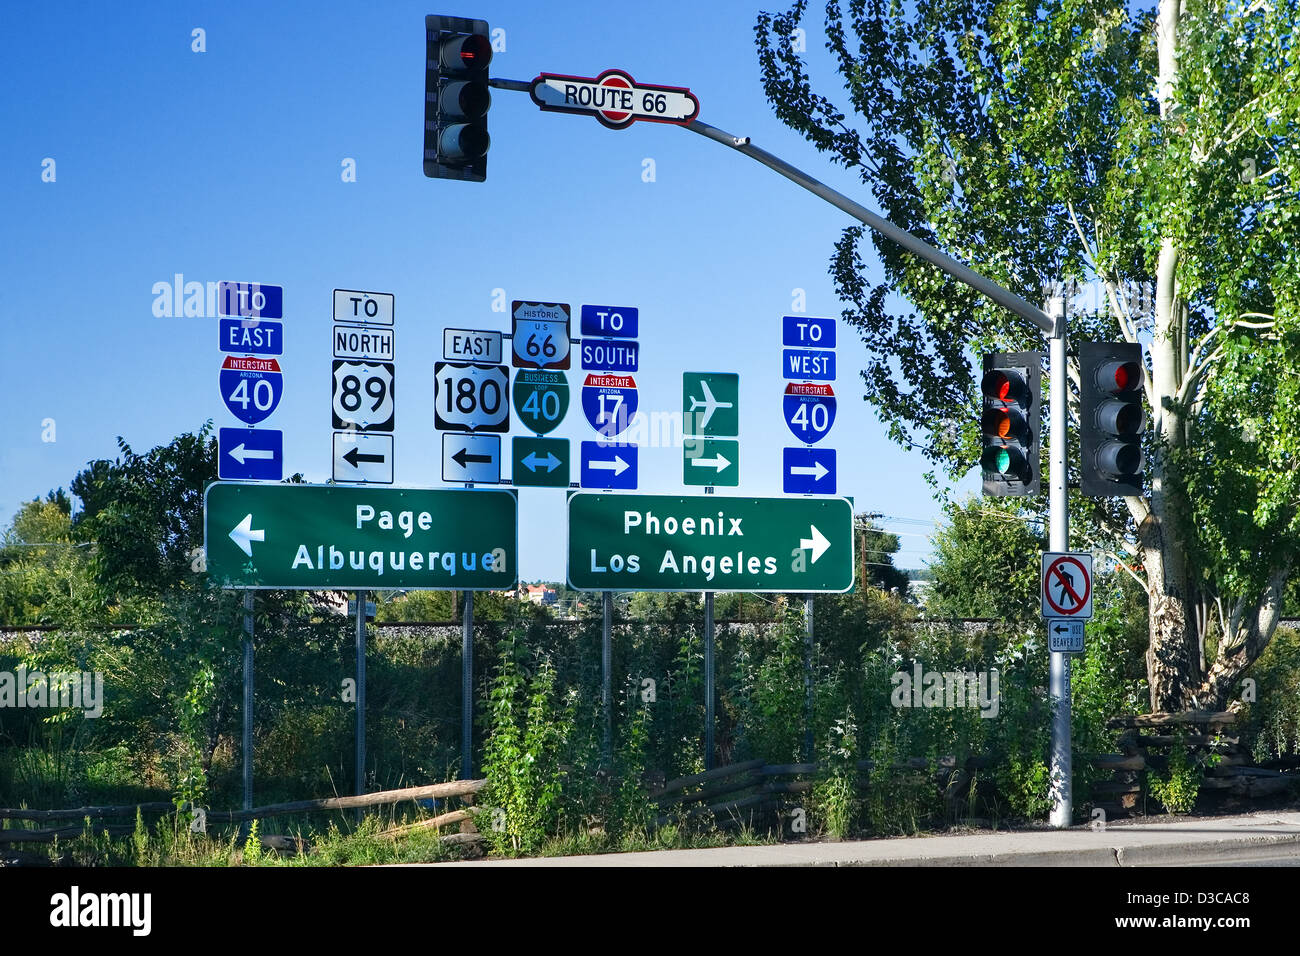 Road signs on Route 66 in Flagstaff, Arizona, USA - Stock Image